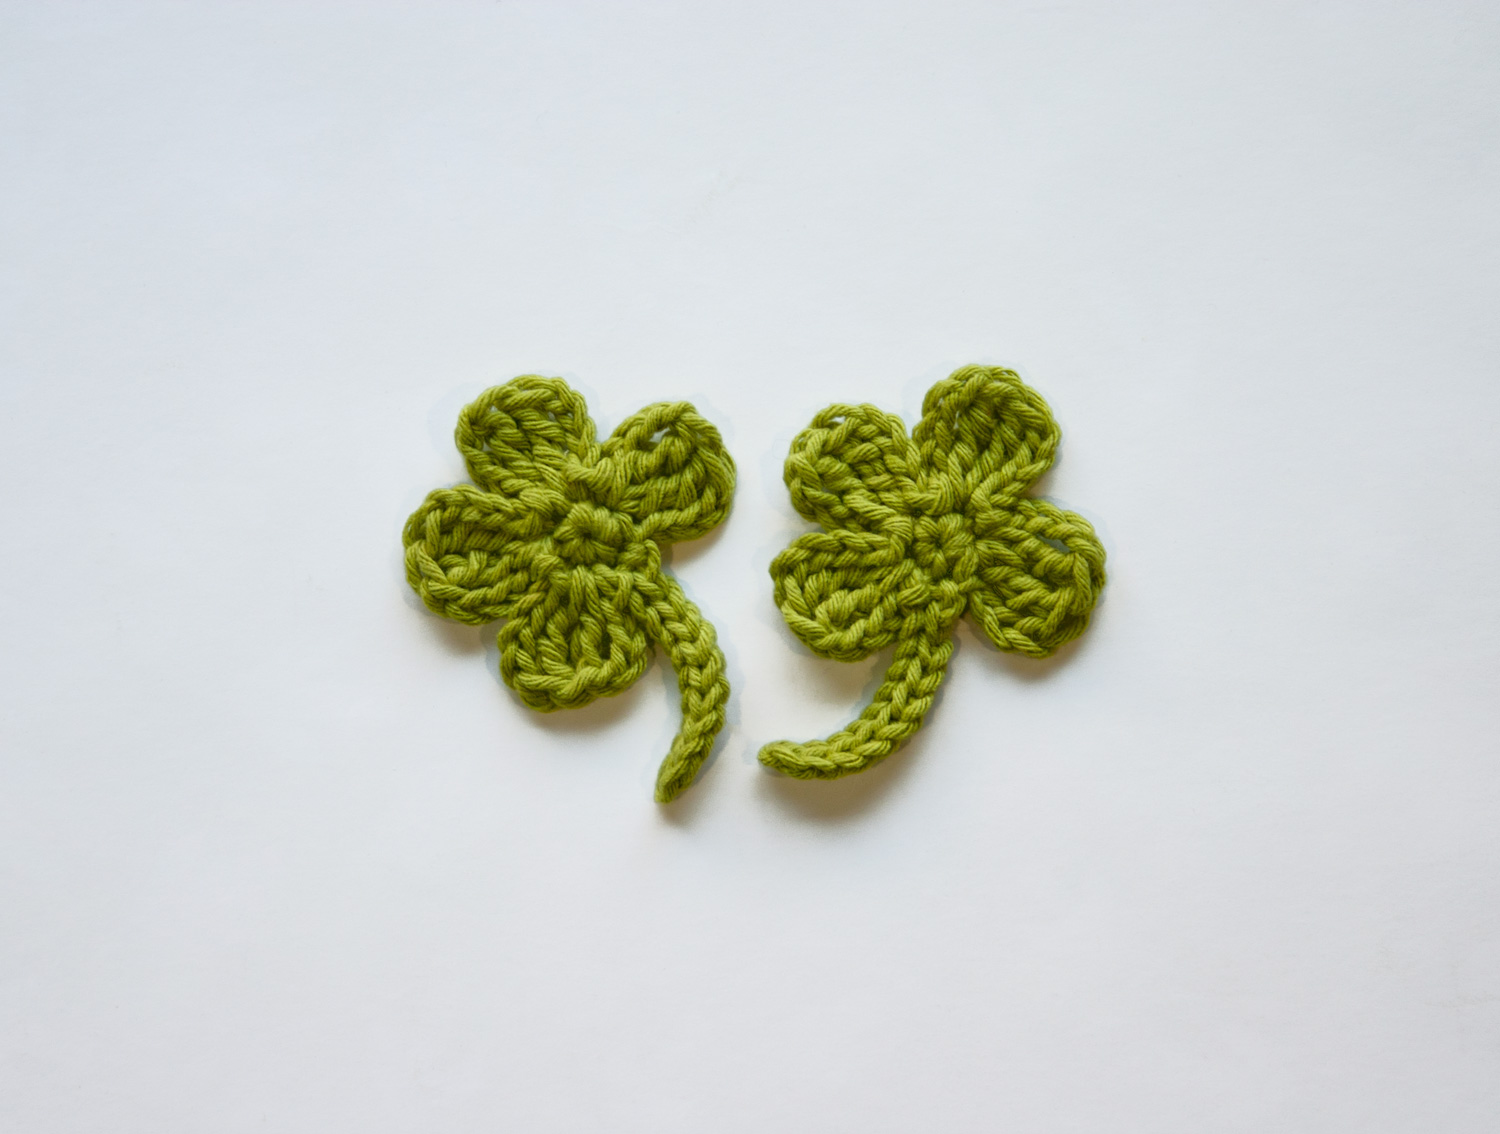 Leaf crochet pattern 4